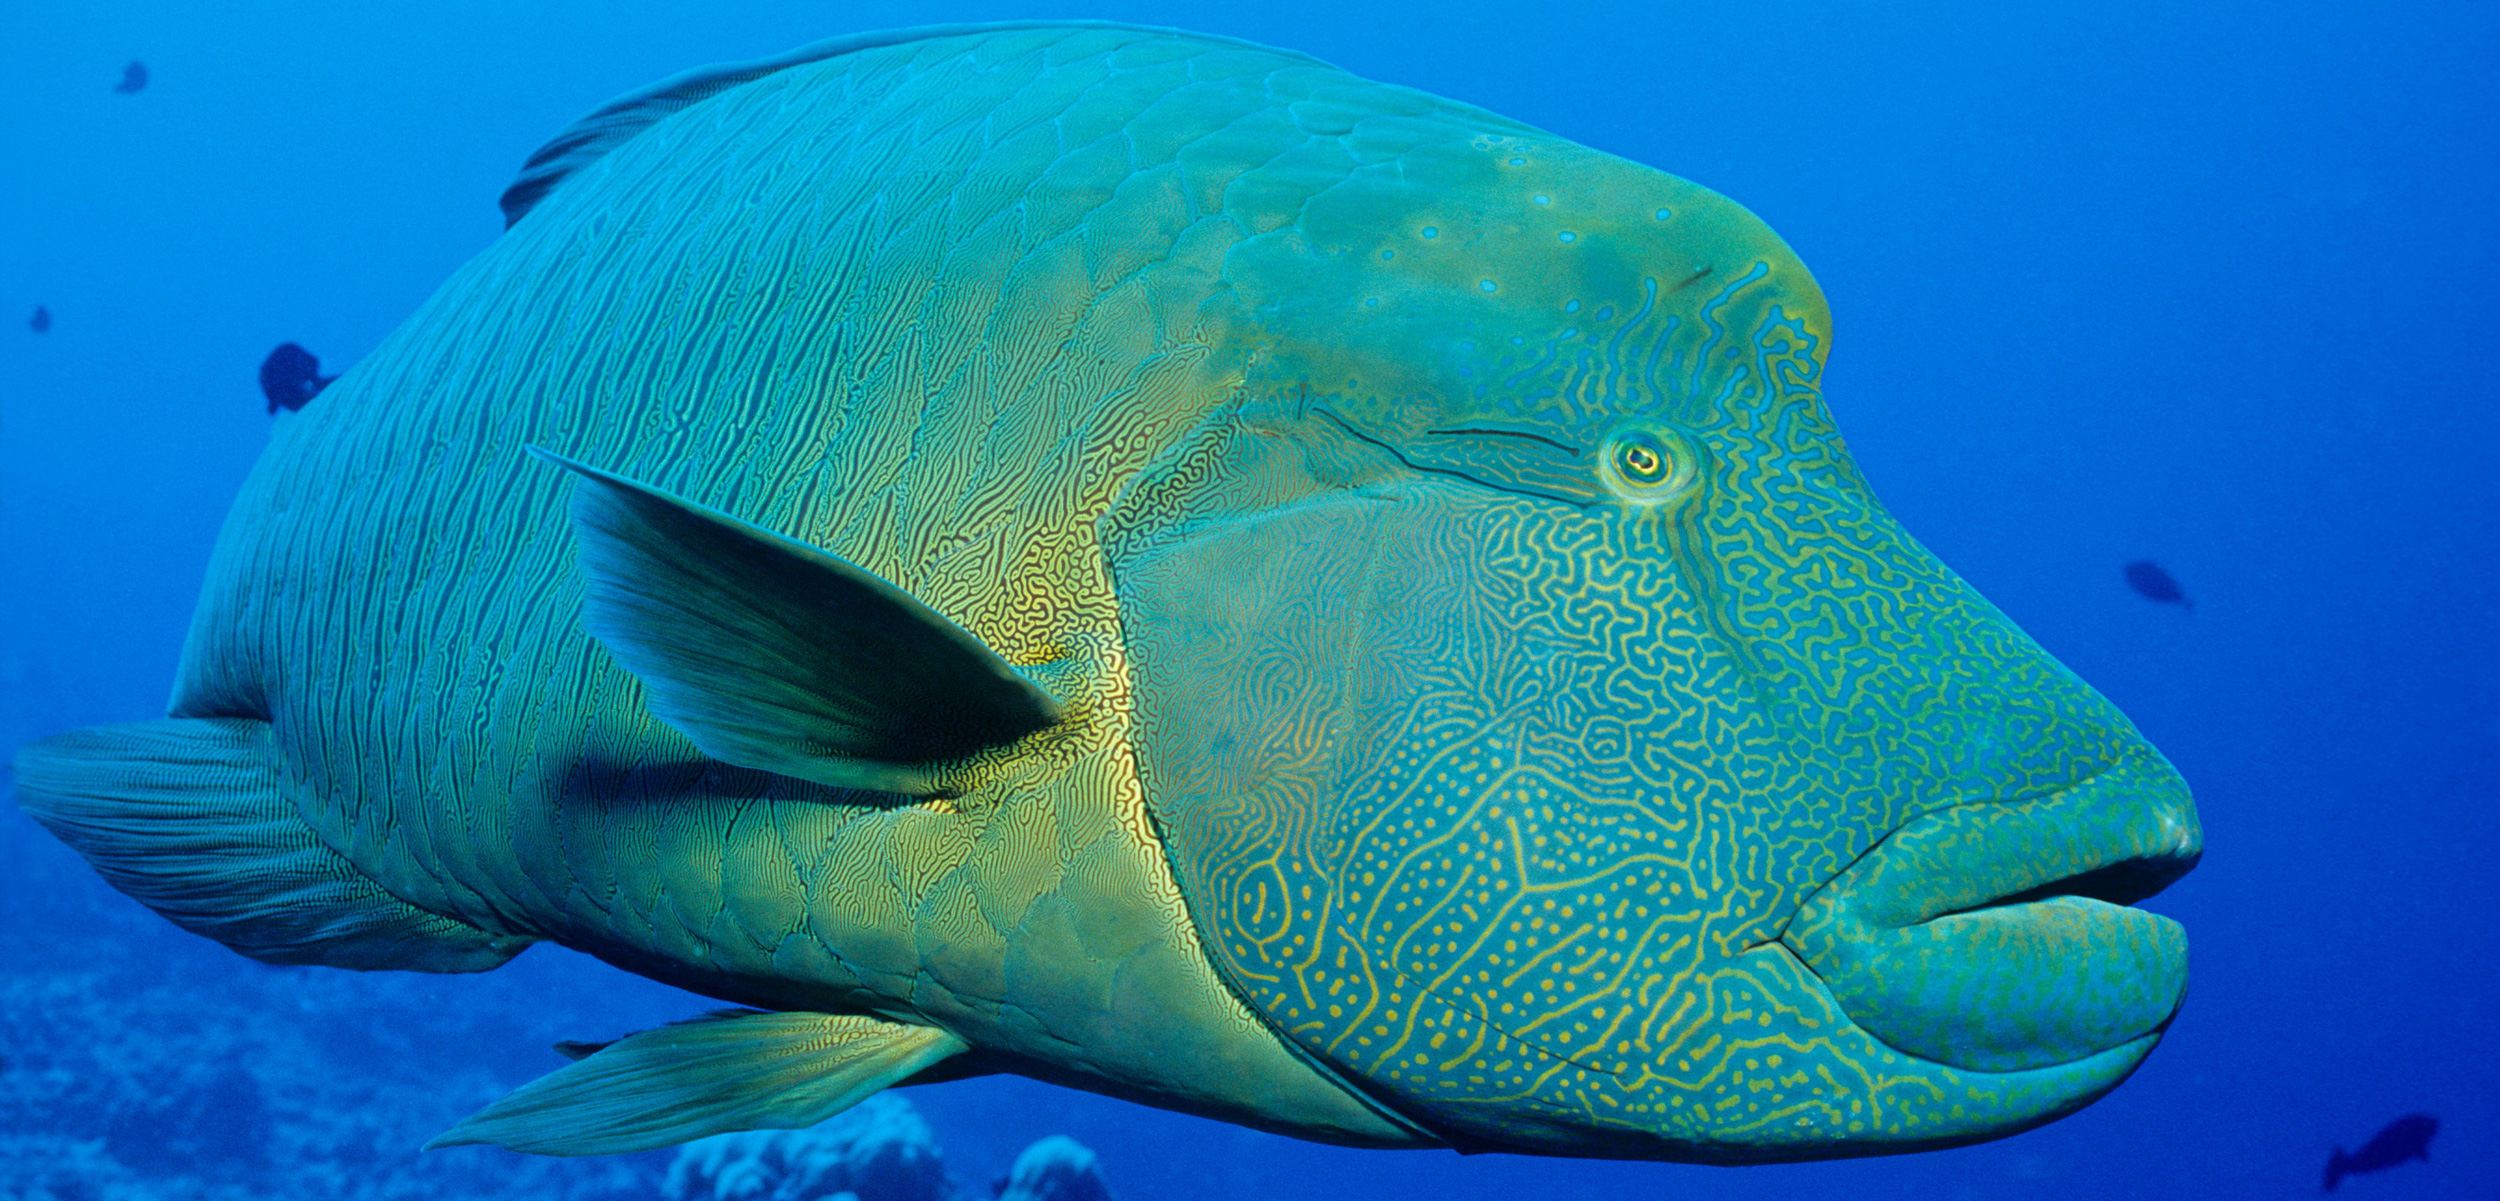 The Napoleon wrasse is a large reef fish from the Indo-Pacific region that's prized as a high-status seafood dish in Hong Kong and Mainland China. Photo by WaterFrame/Alamy Stock Photo